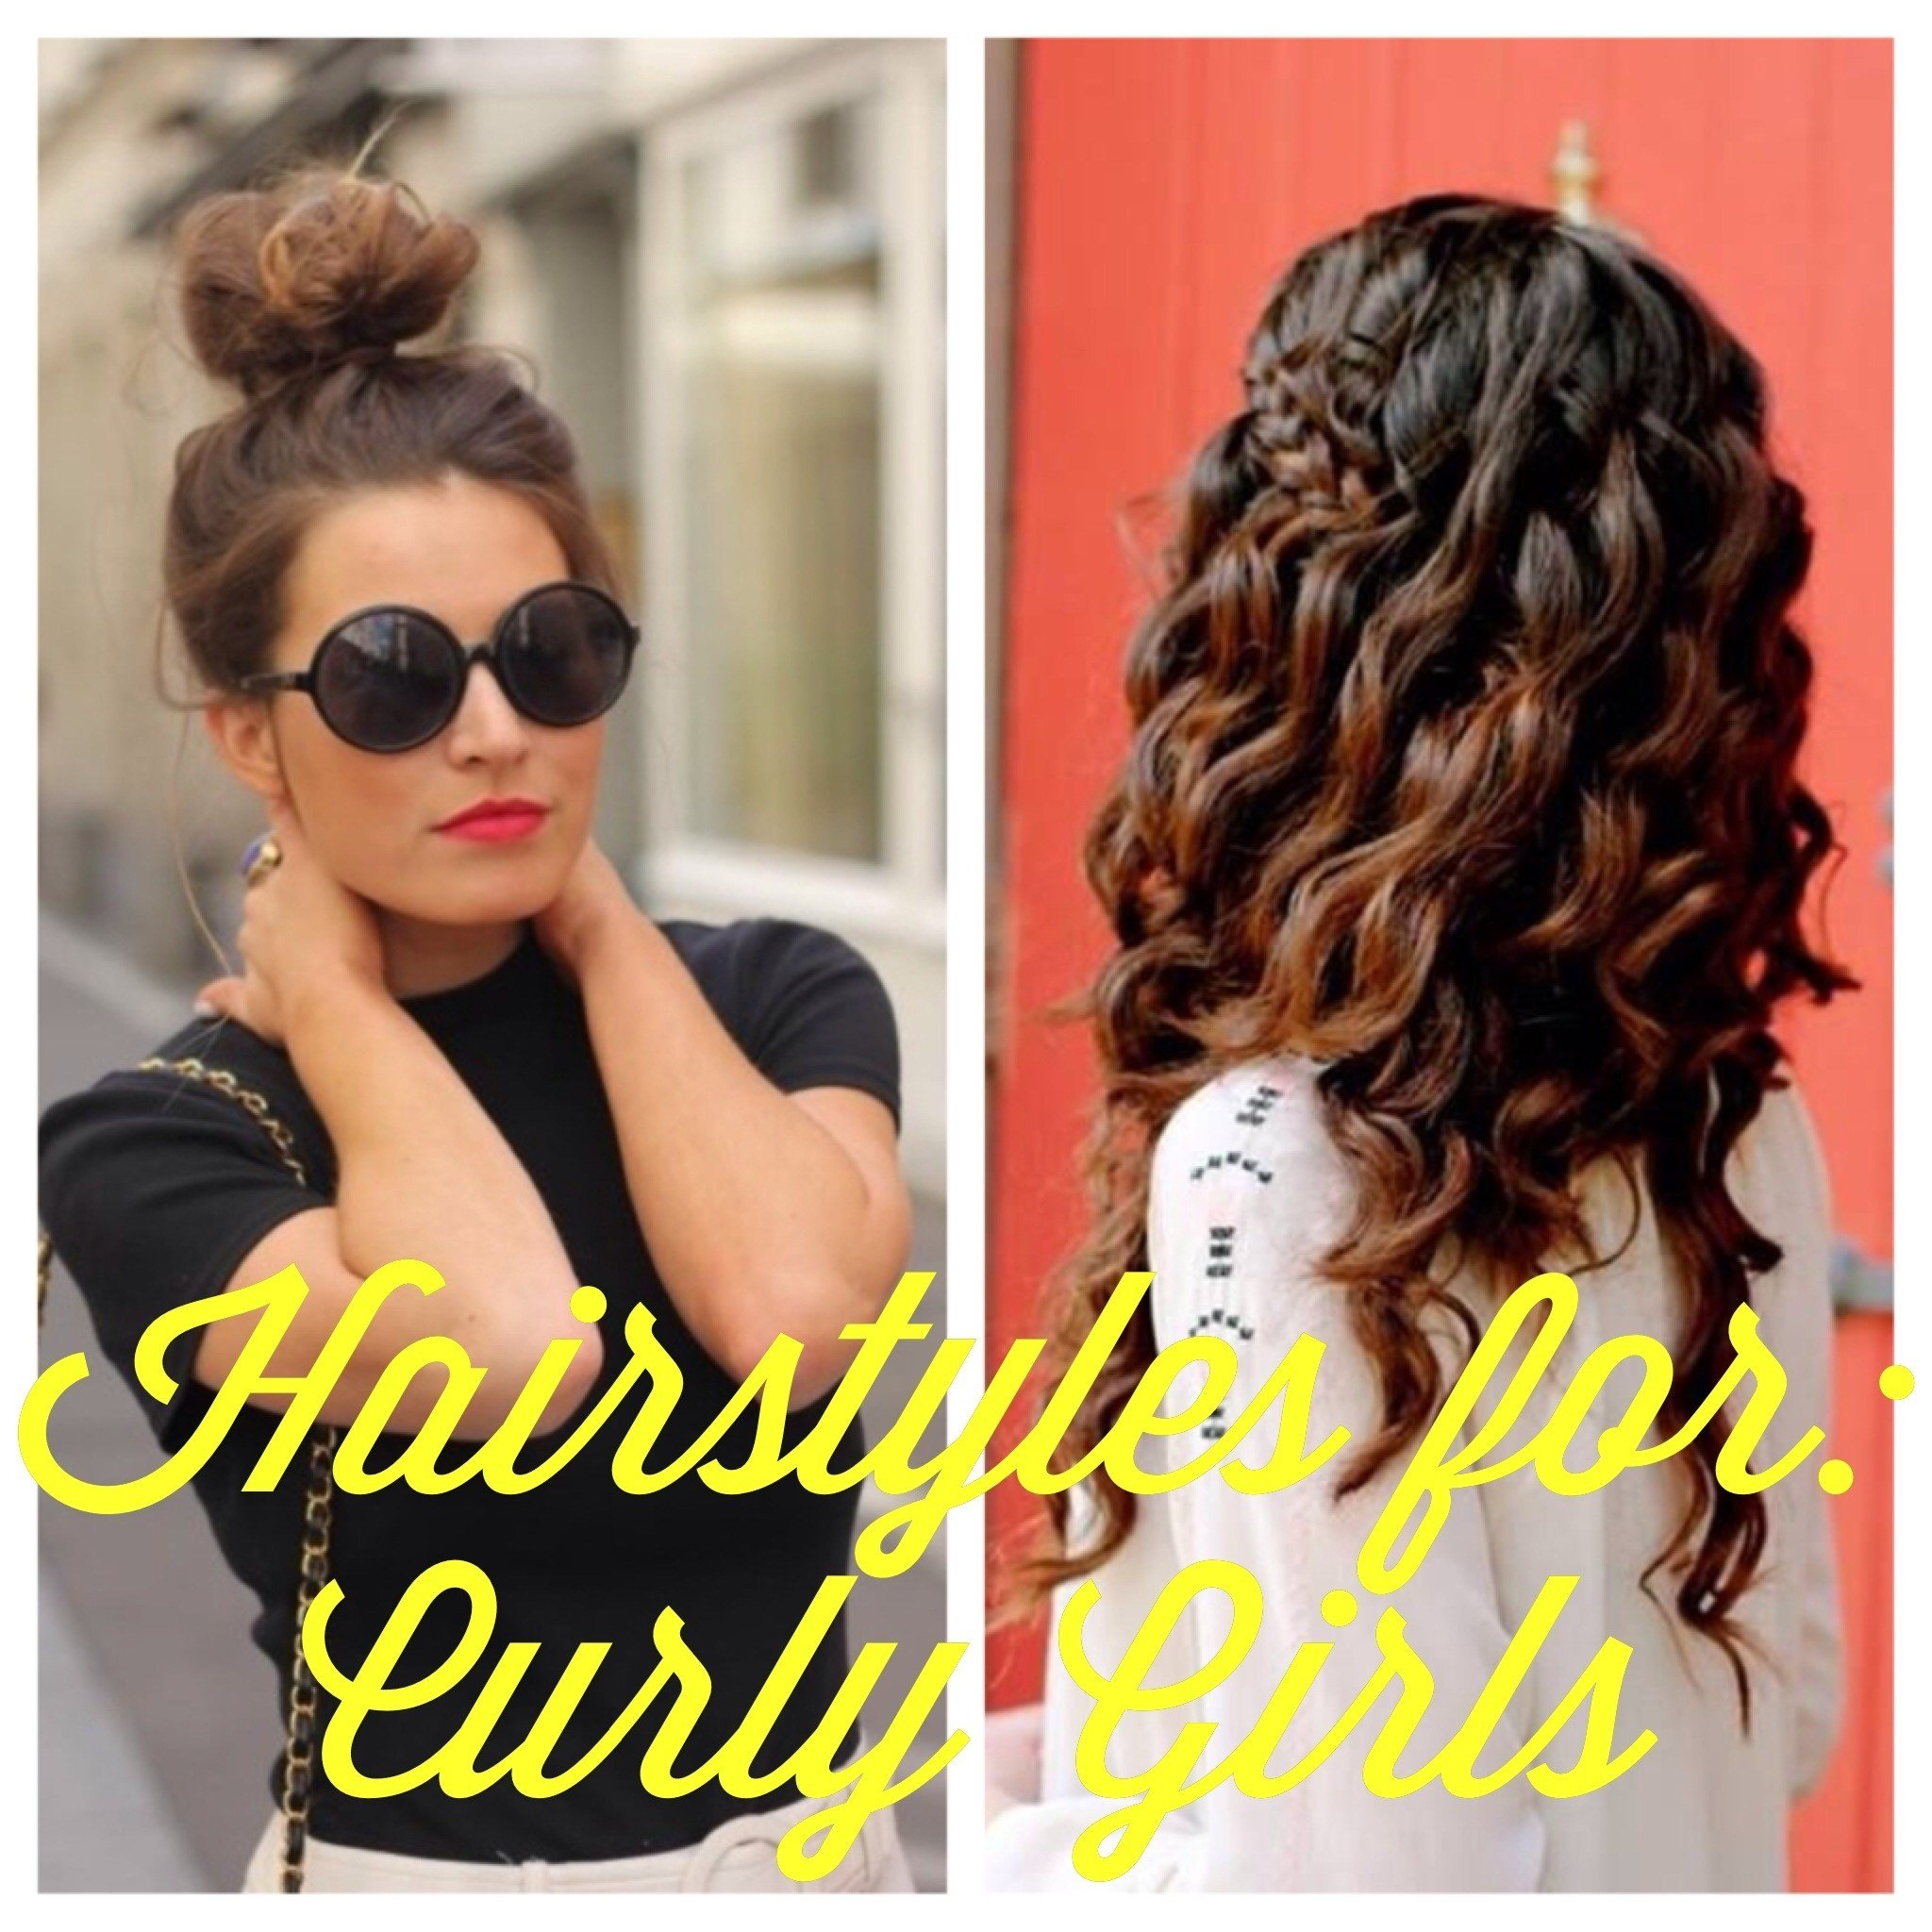 The Best Blogust Day 28 Hairstyles For Curly Girls Classy Girl Pictures